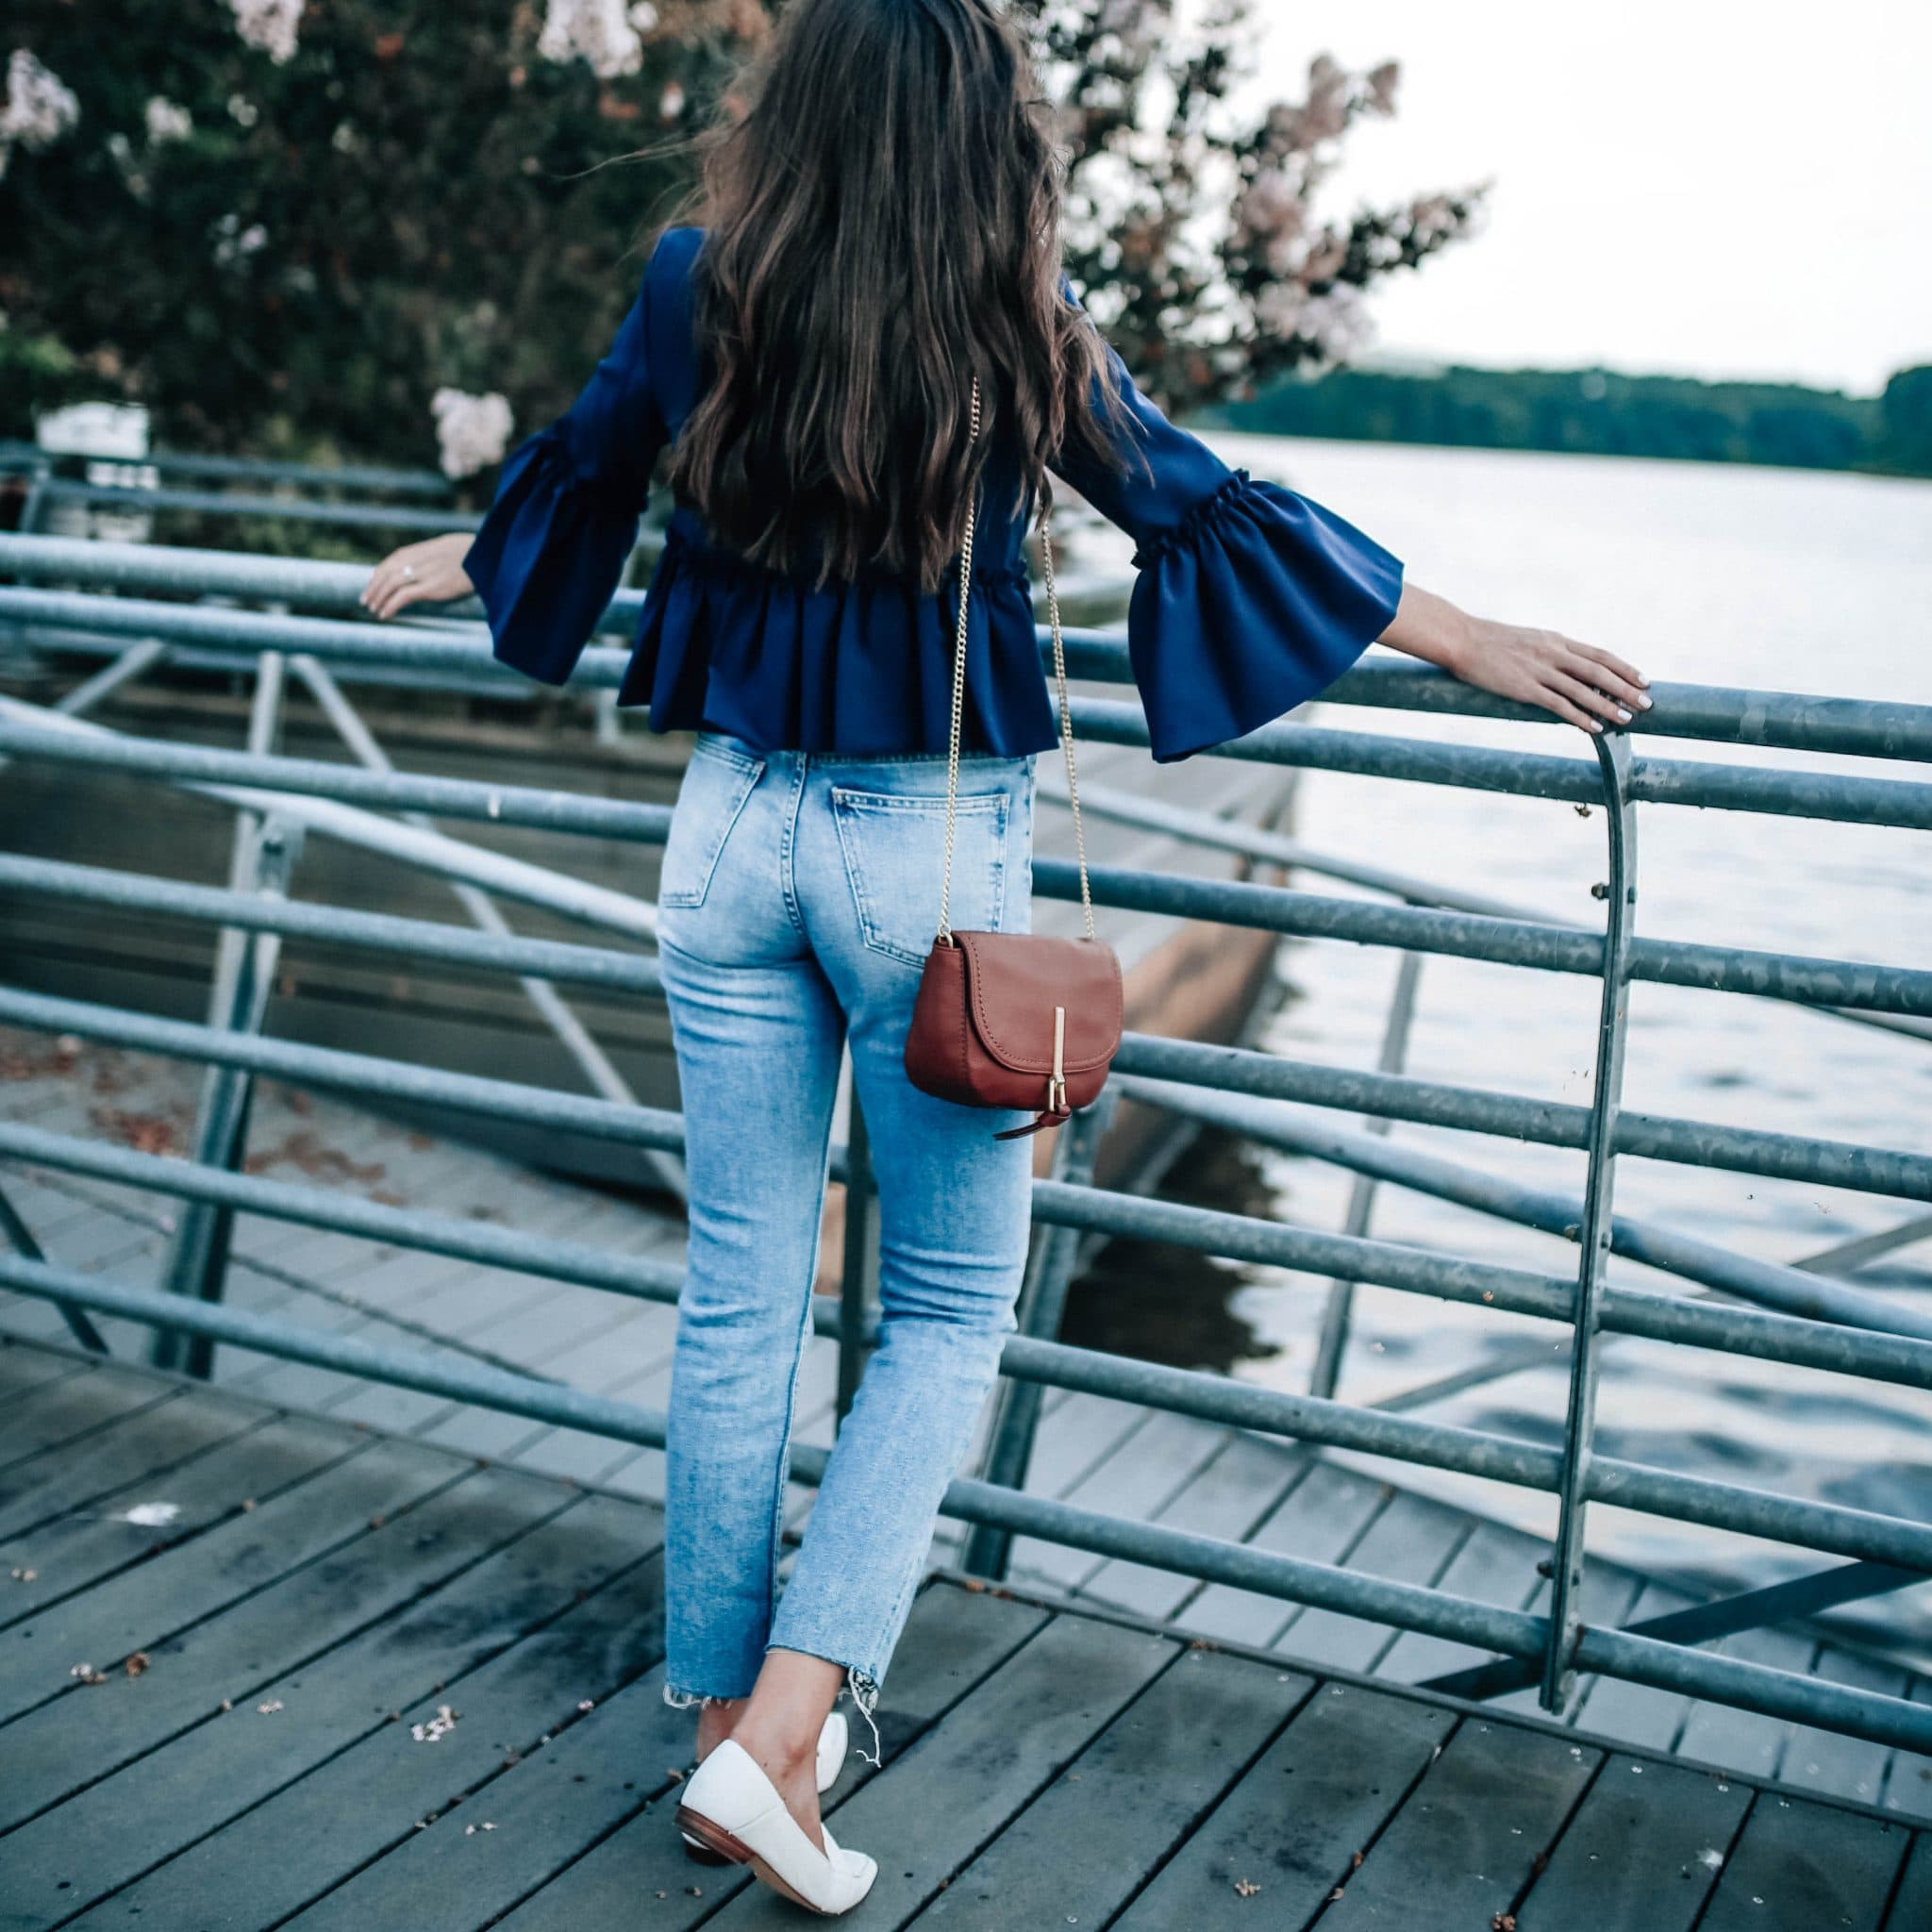 ruffle crop topshop blazer jacket, high waist raw hem denim